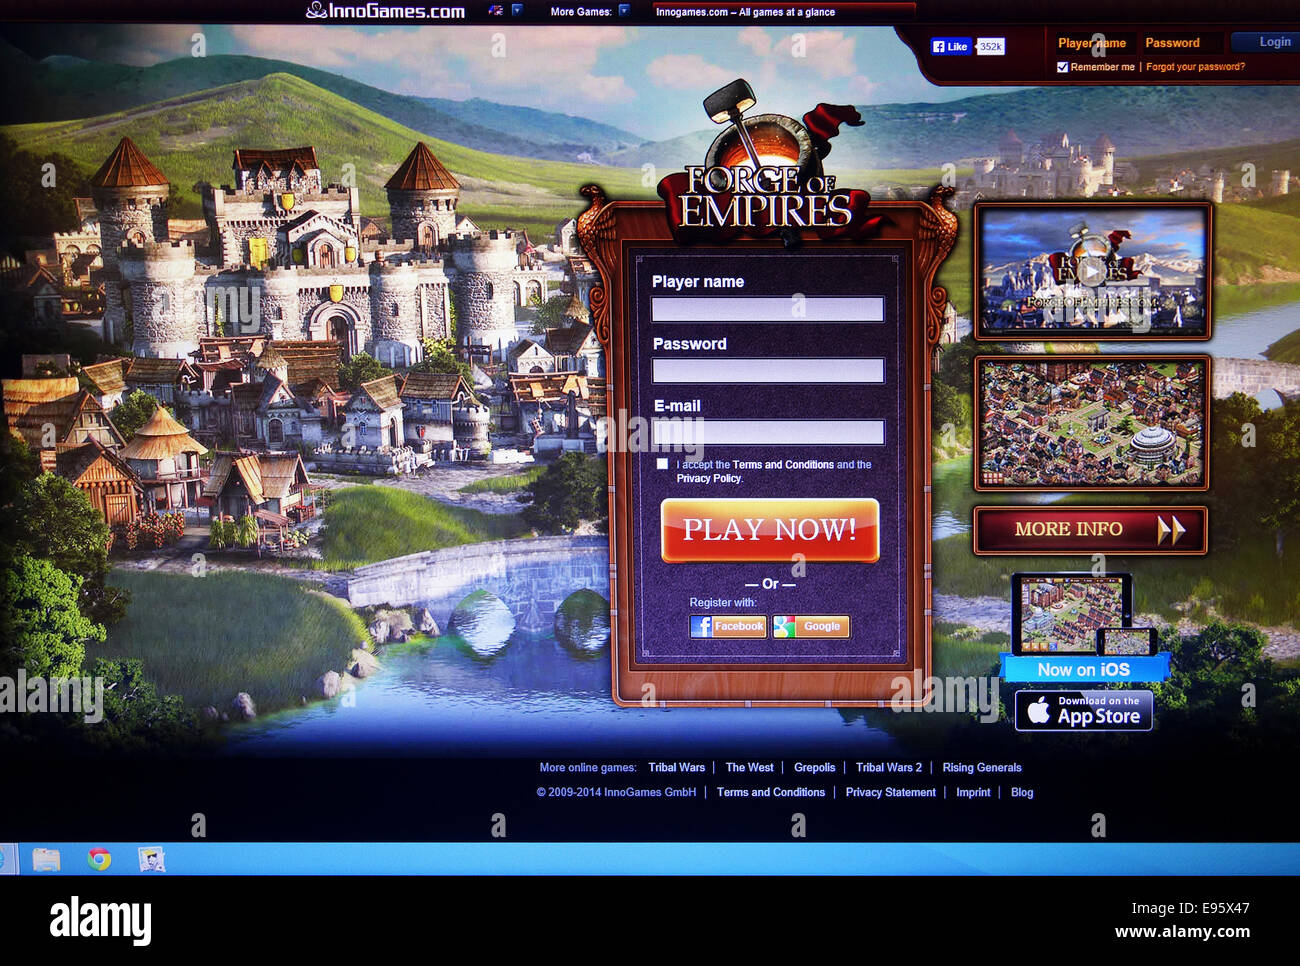 Forge of Empires web site - Stock Image